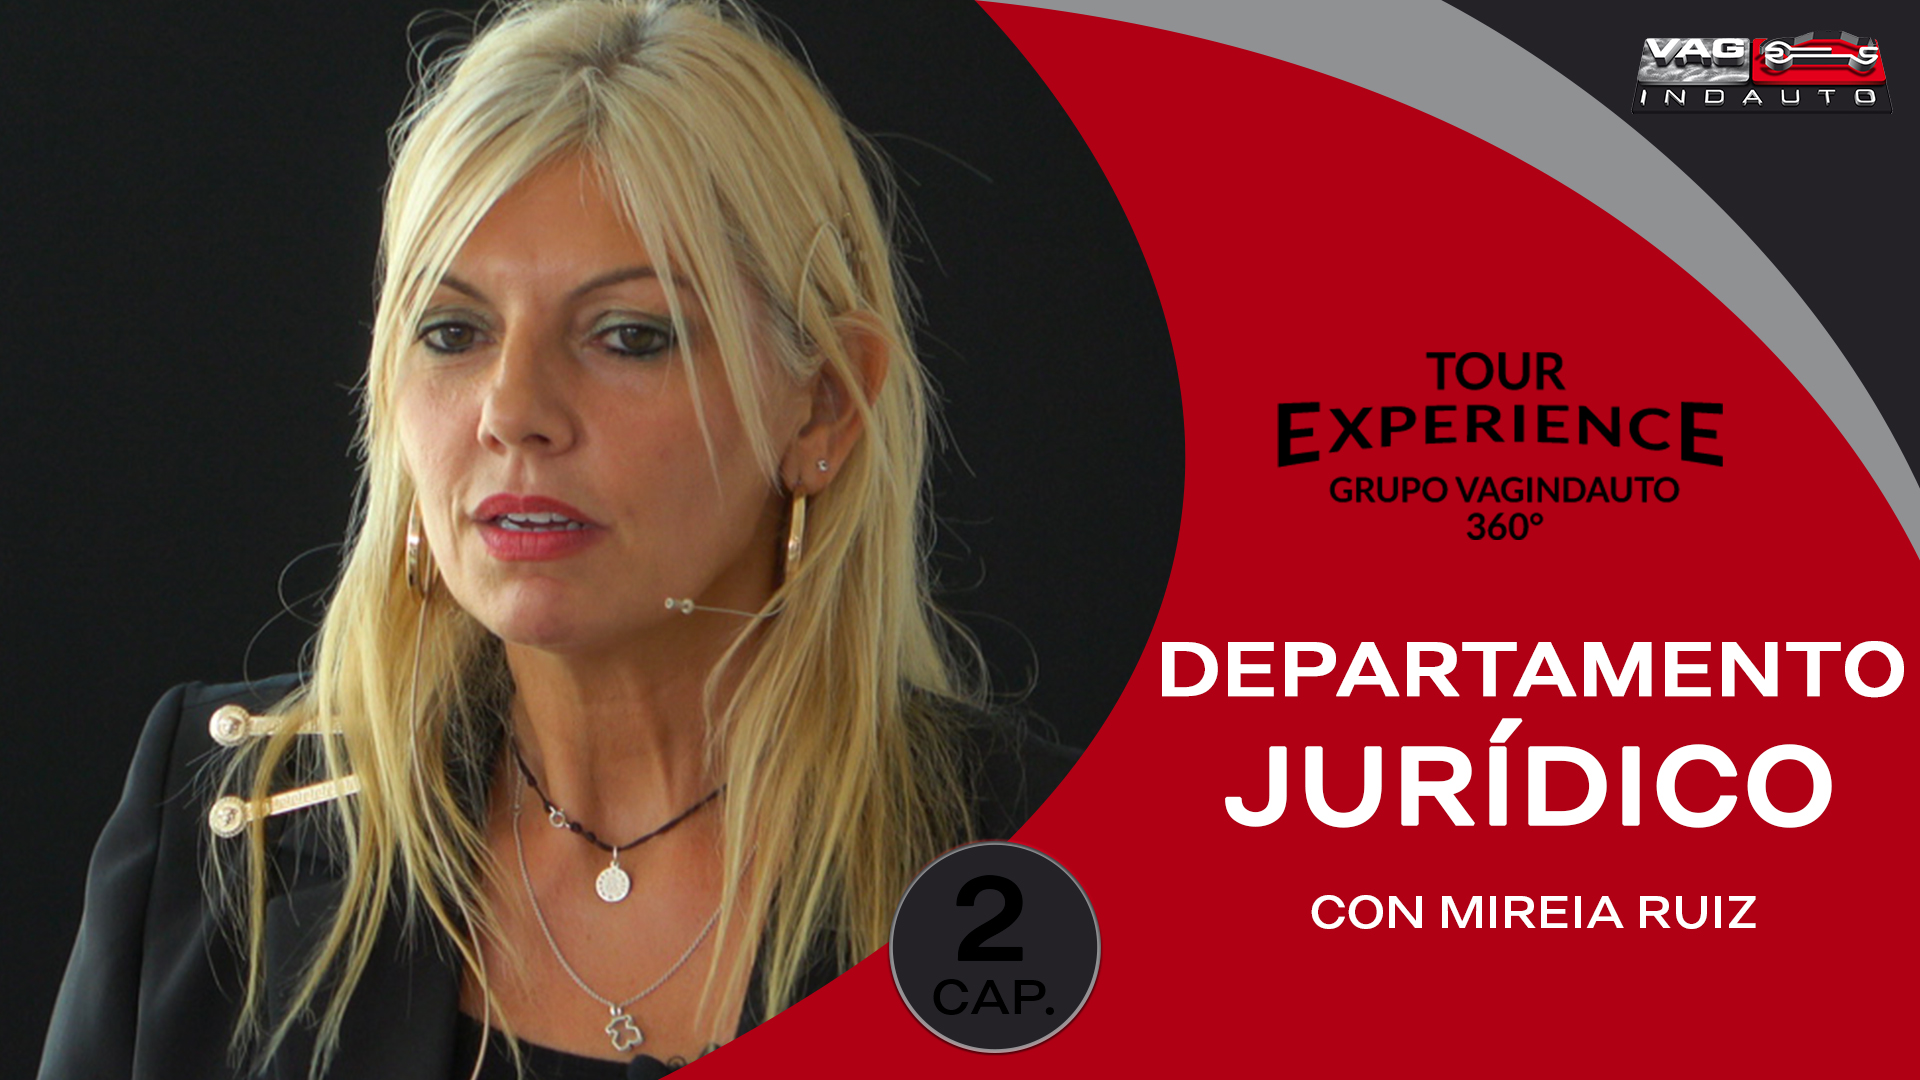 VIDEO PROMOCIONAL FINANZAS  & JURIDICO TOUR EXPERIENCE